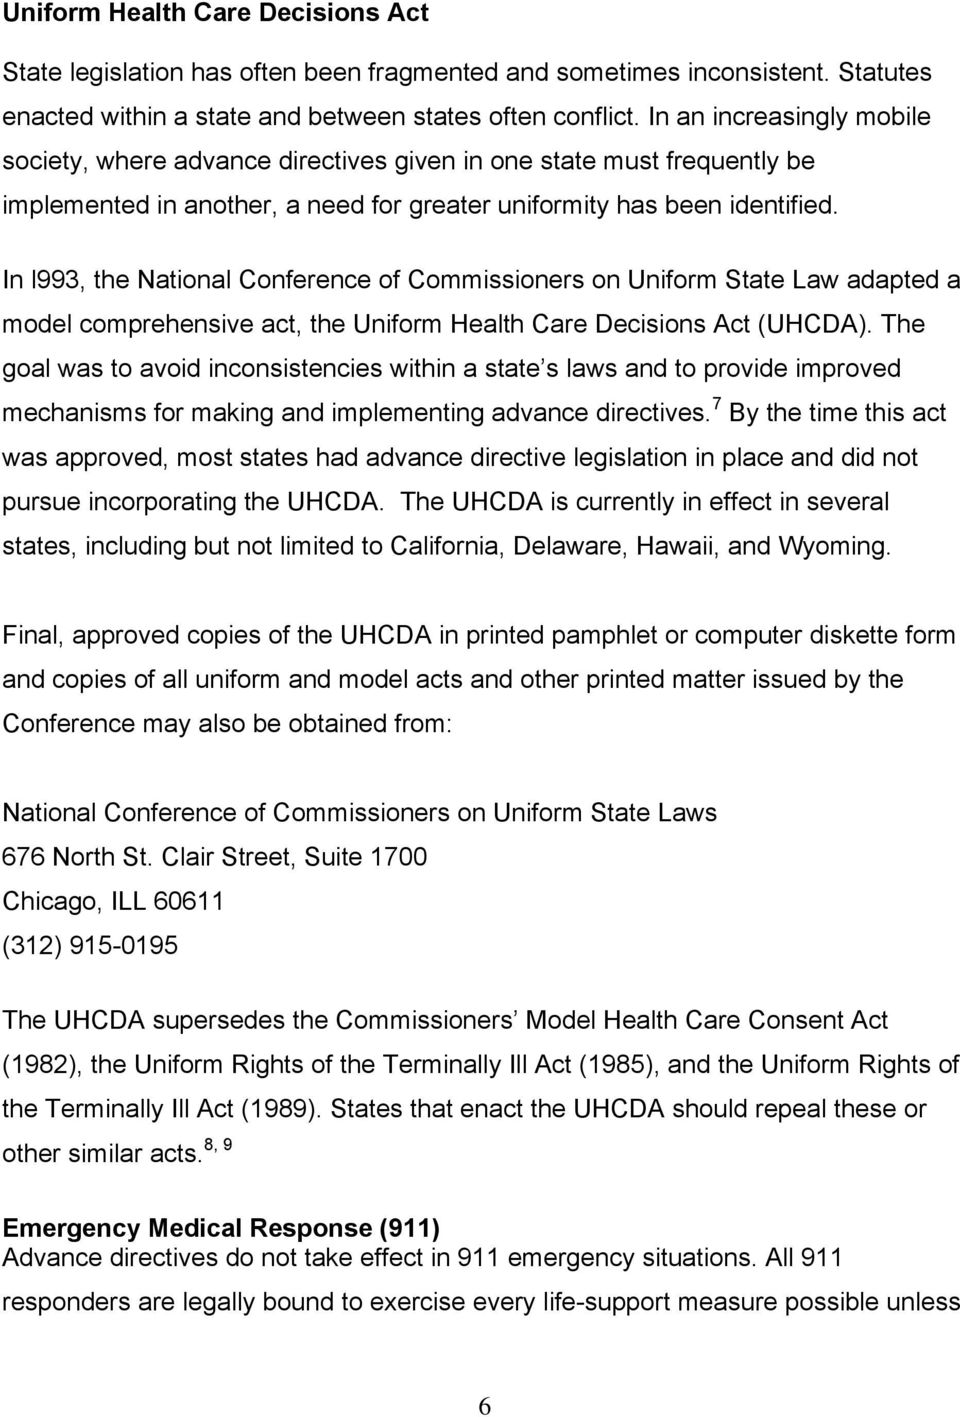 In l993, the National Conference of Commissioners on Uniform State Law adapted a model comprehensive act, the Uniform Health Care Decisions Act (UHCDA).